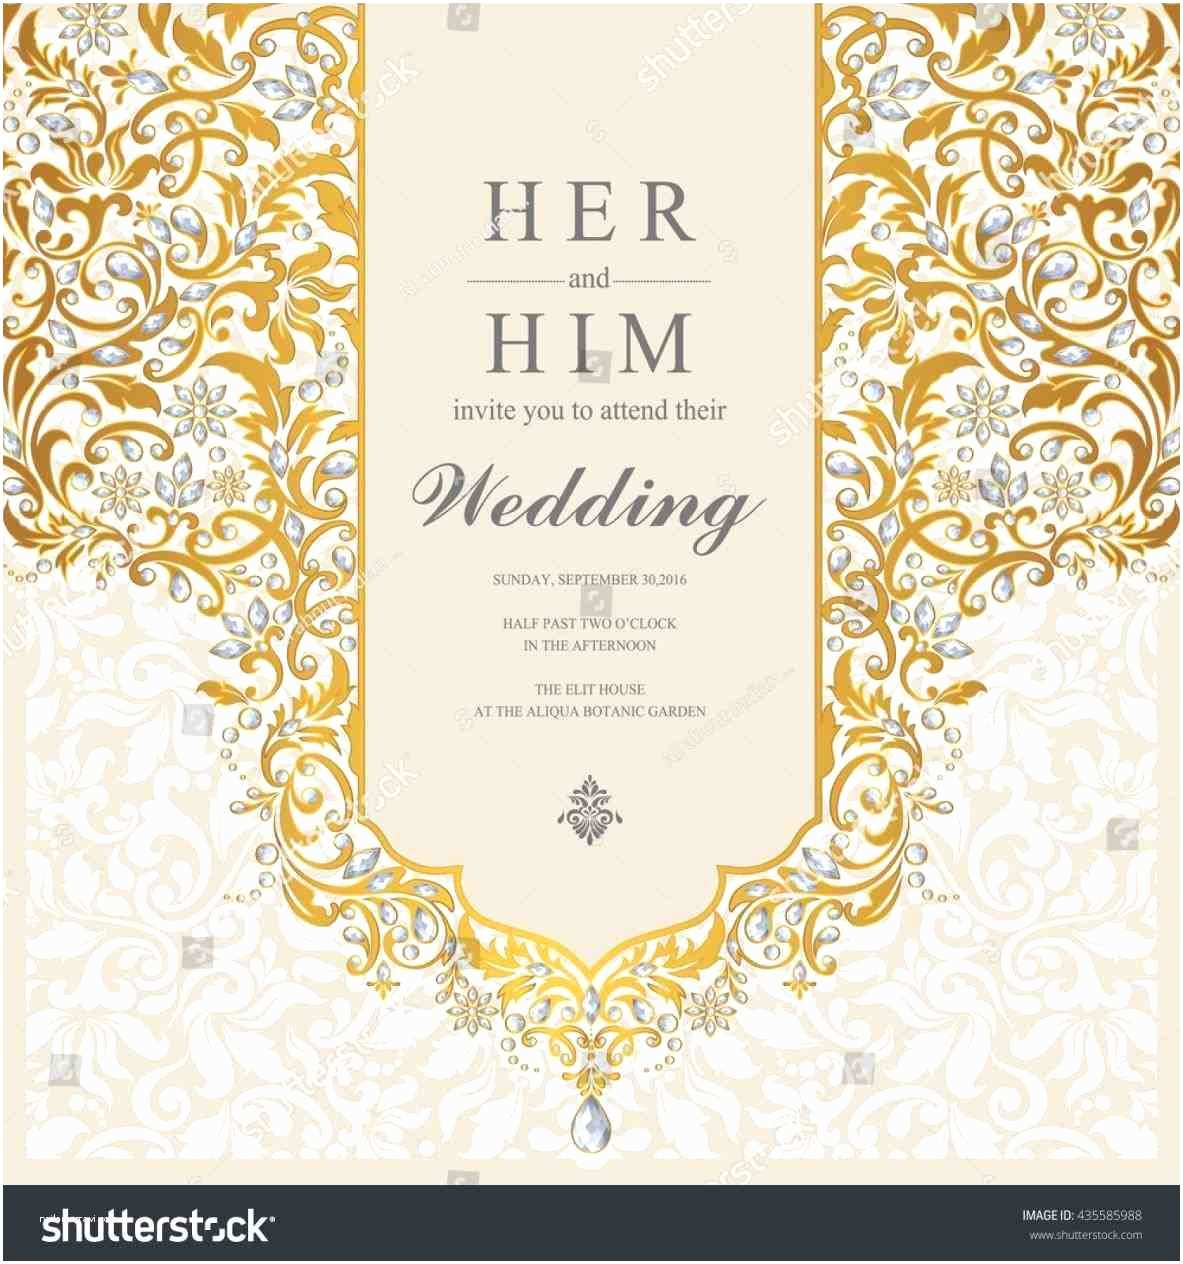 Wedding Invitation for Indian Wedding Abstract Floral Stock Vector Invite Invitation Wedding